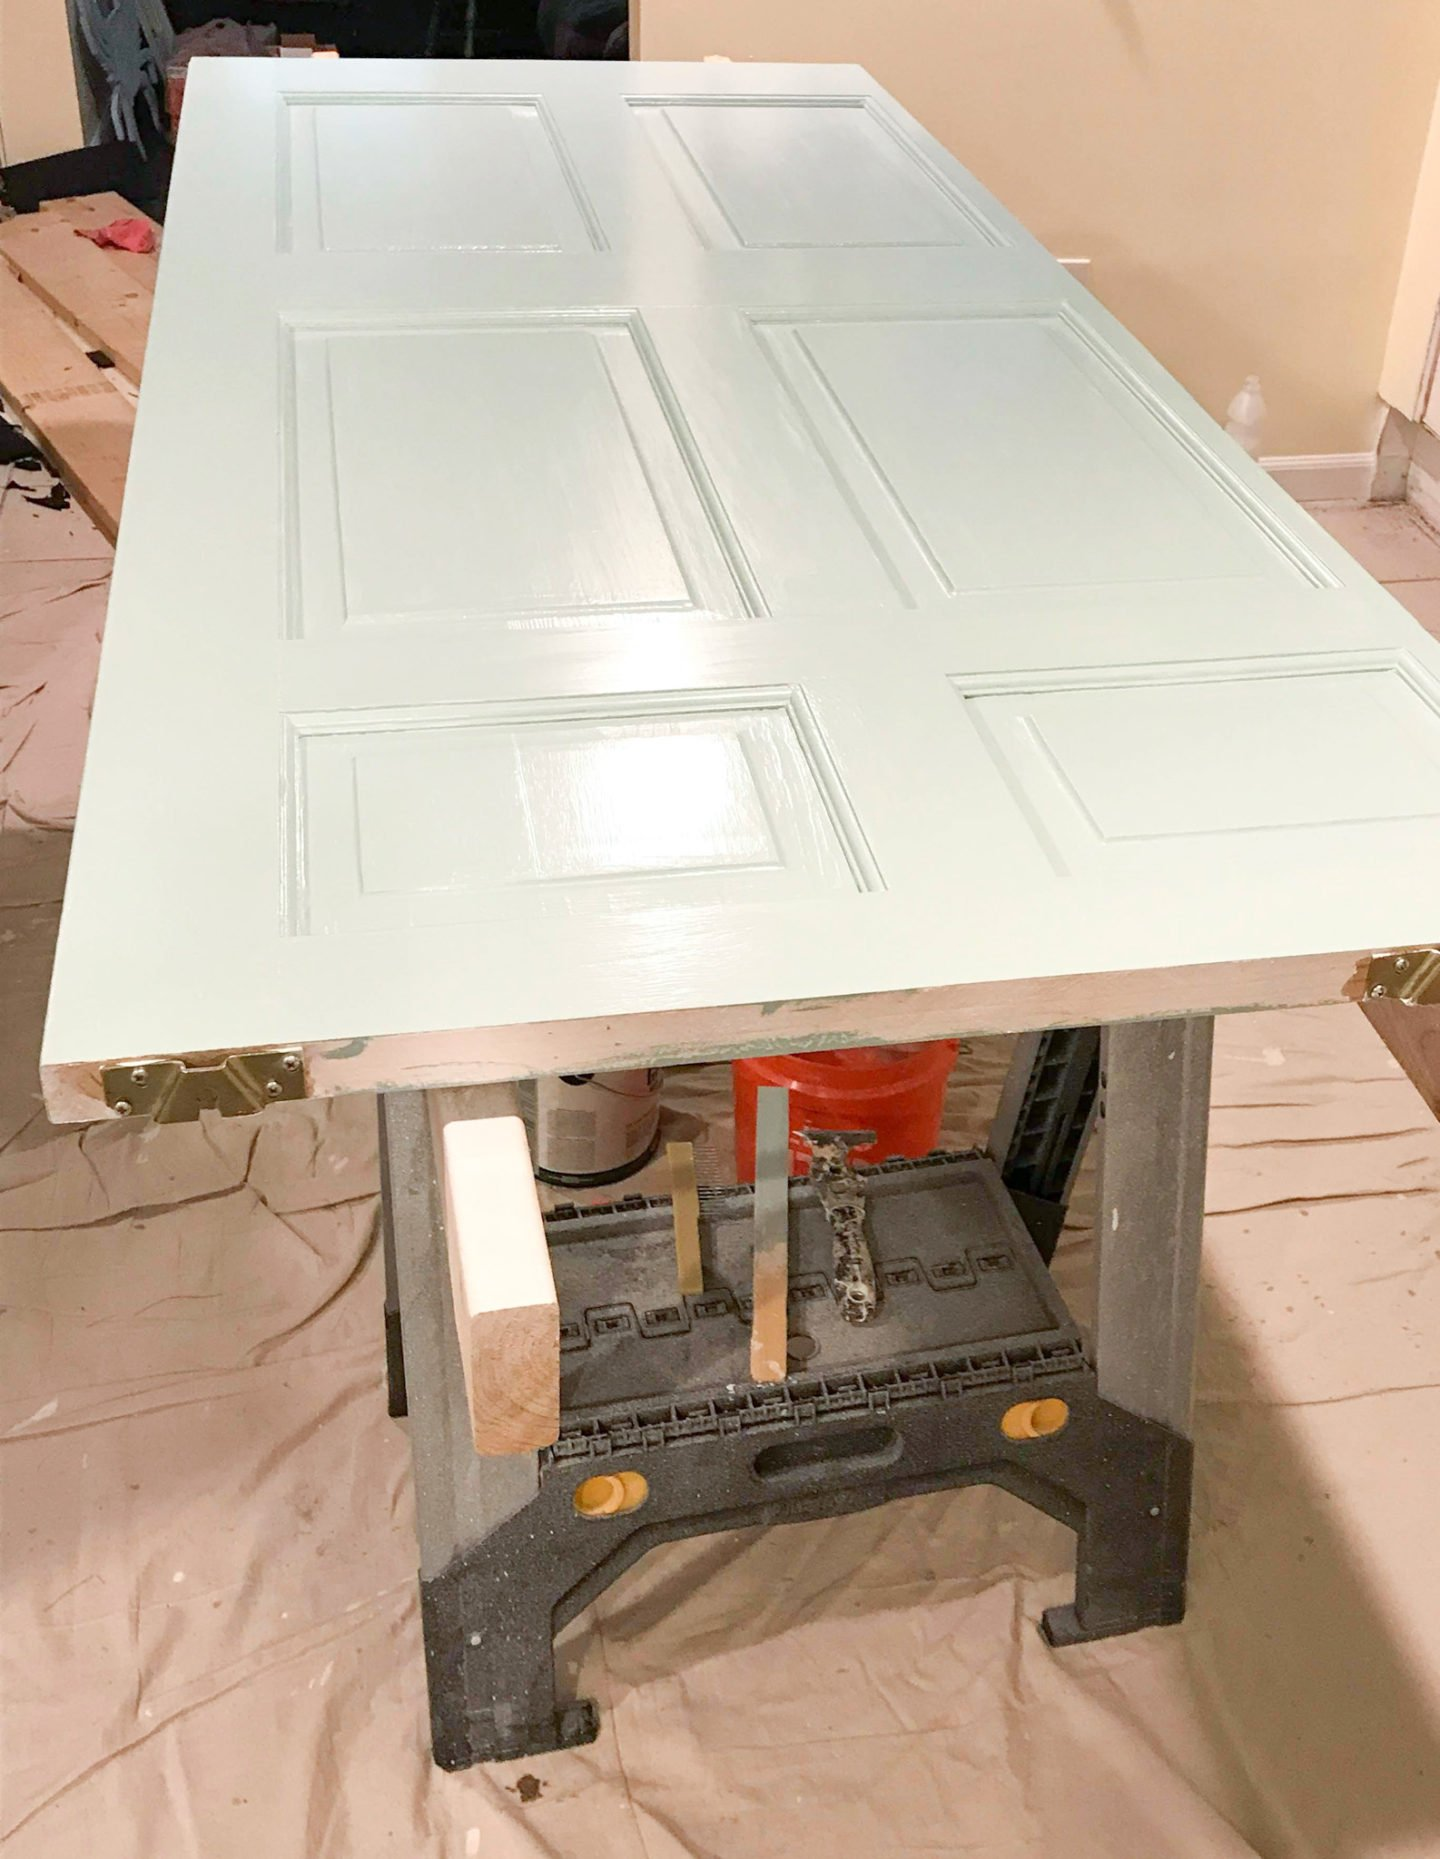 Step 8 in the door painting tutorial - apply the paint